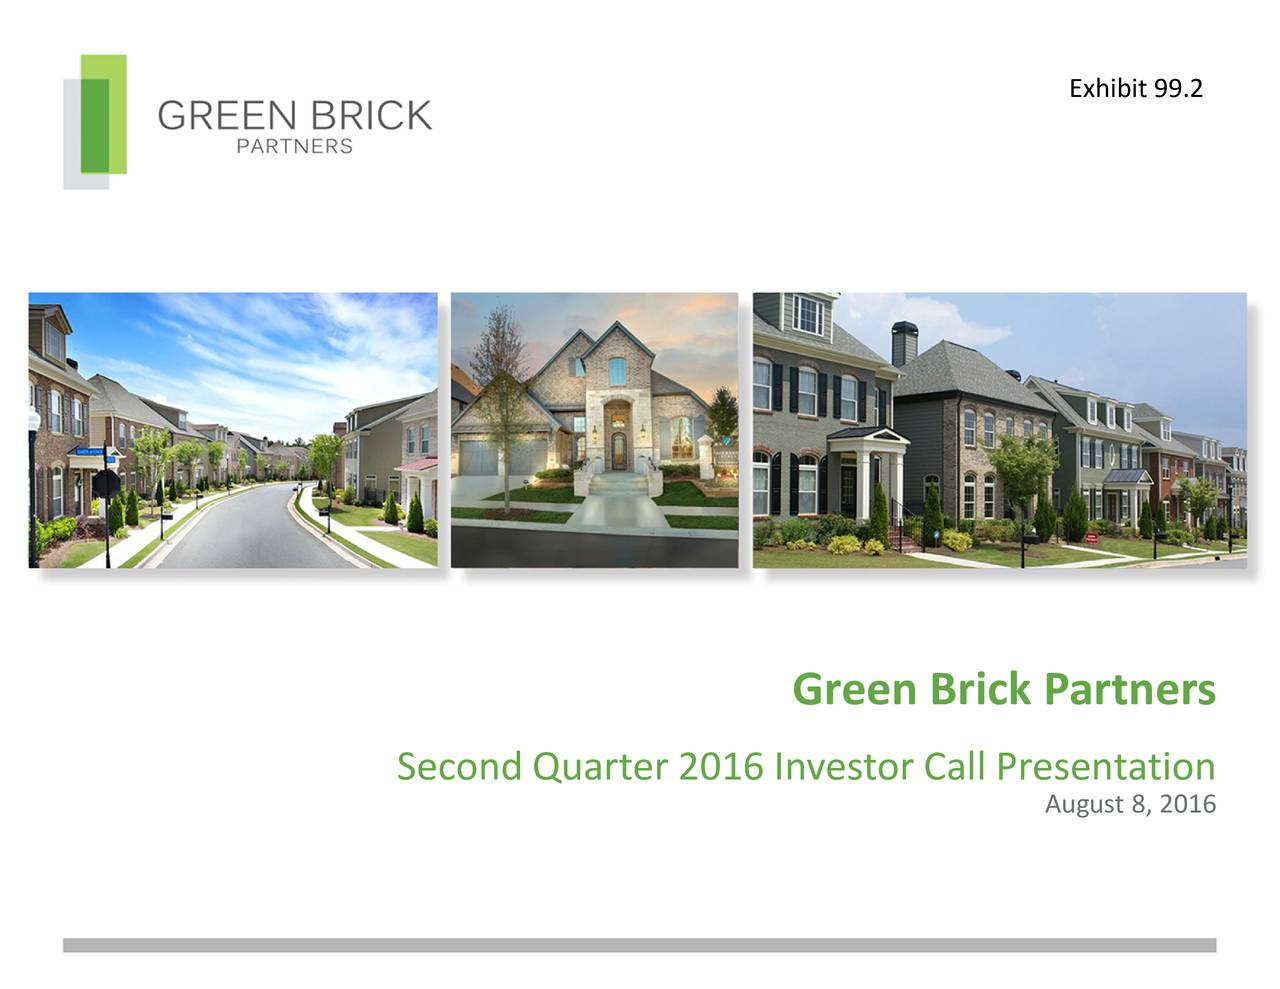 Green Brick Partners Second Quarter 2016 Investor Call Presentation August 8, 2016